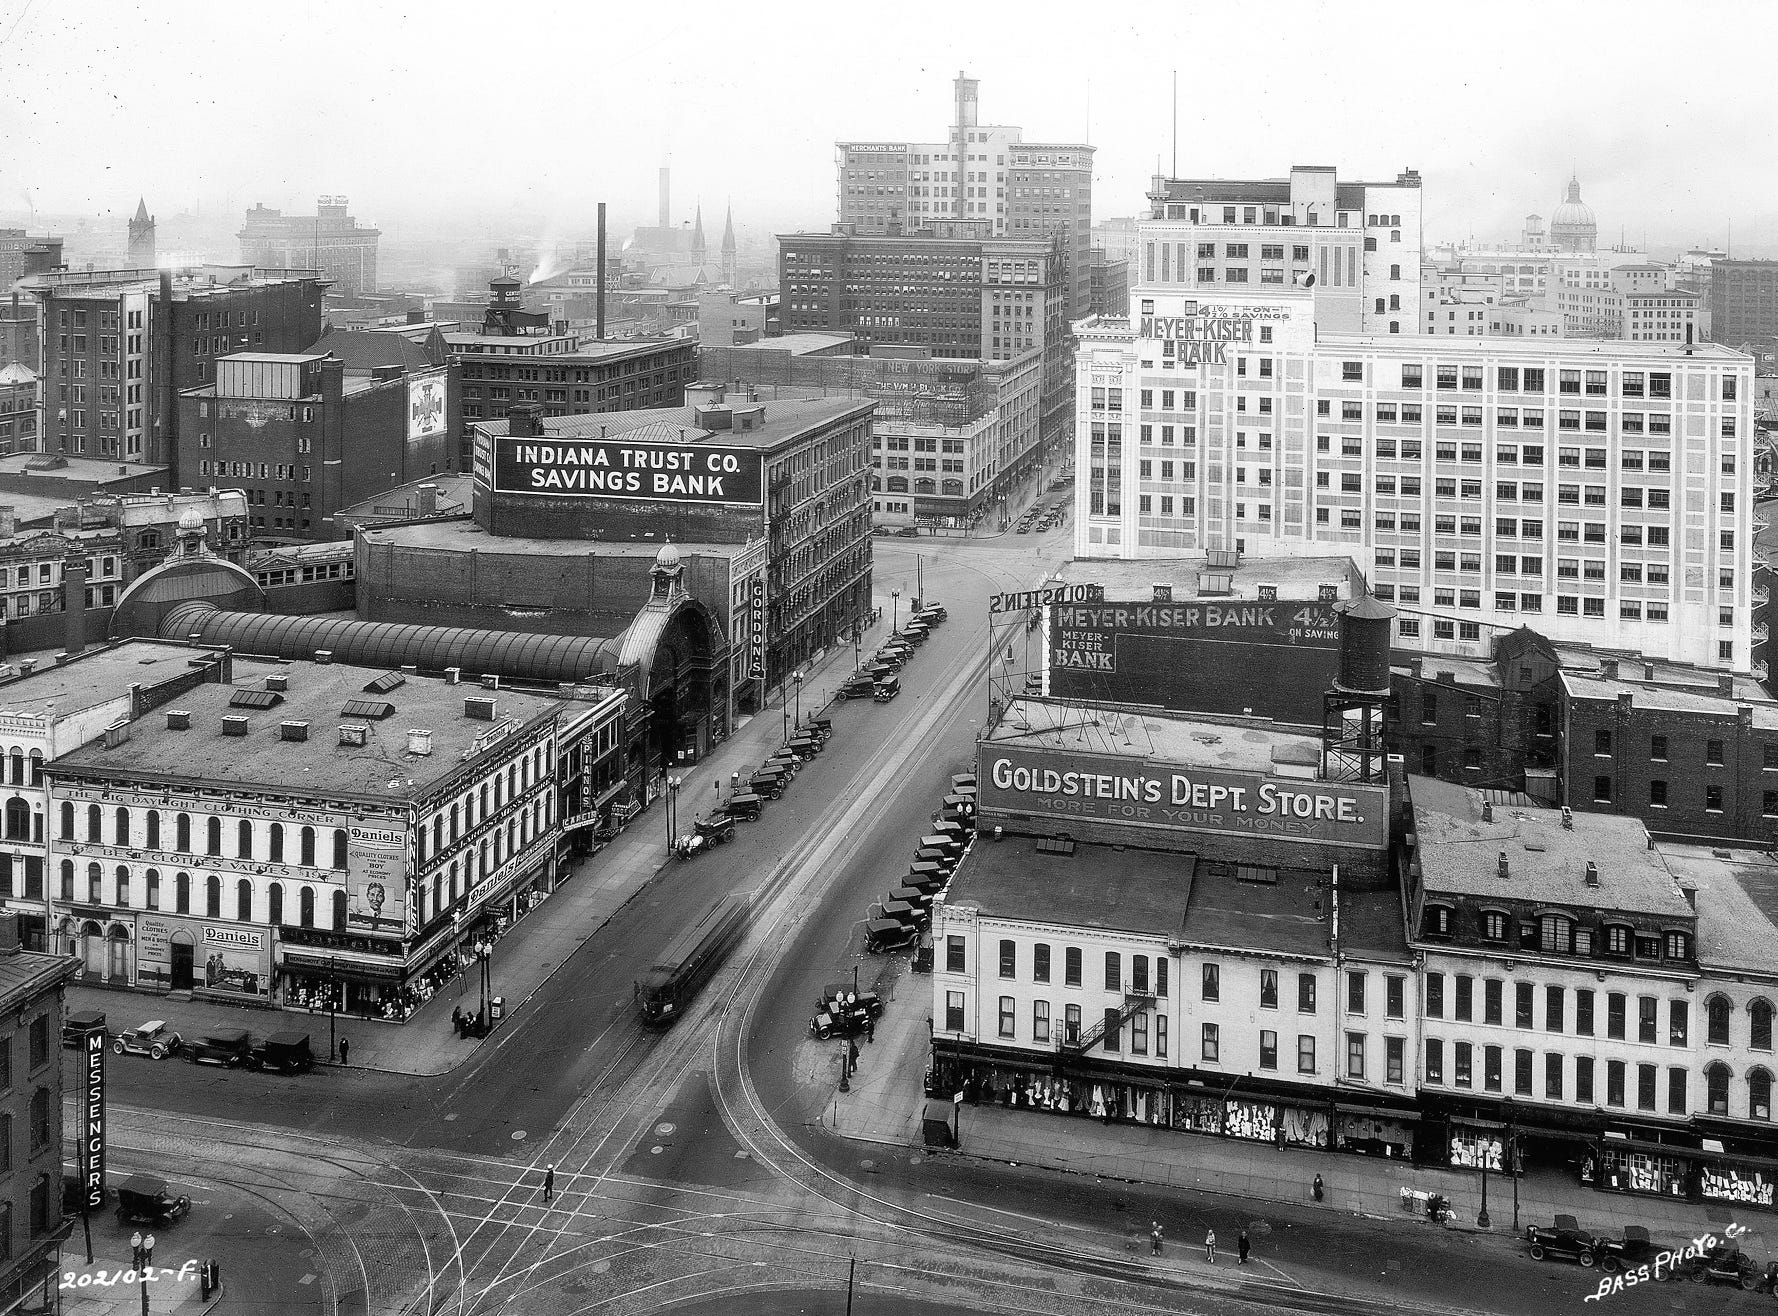 Indianapolis downtown looking west on Washington St. Photo taken from the top of the Courthouse situated at Washington & Delaware St. May 18, 1927